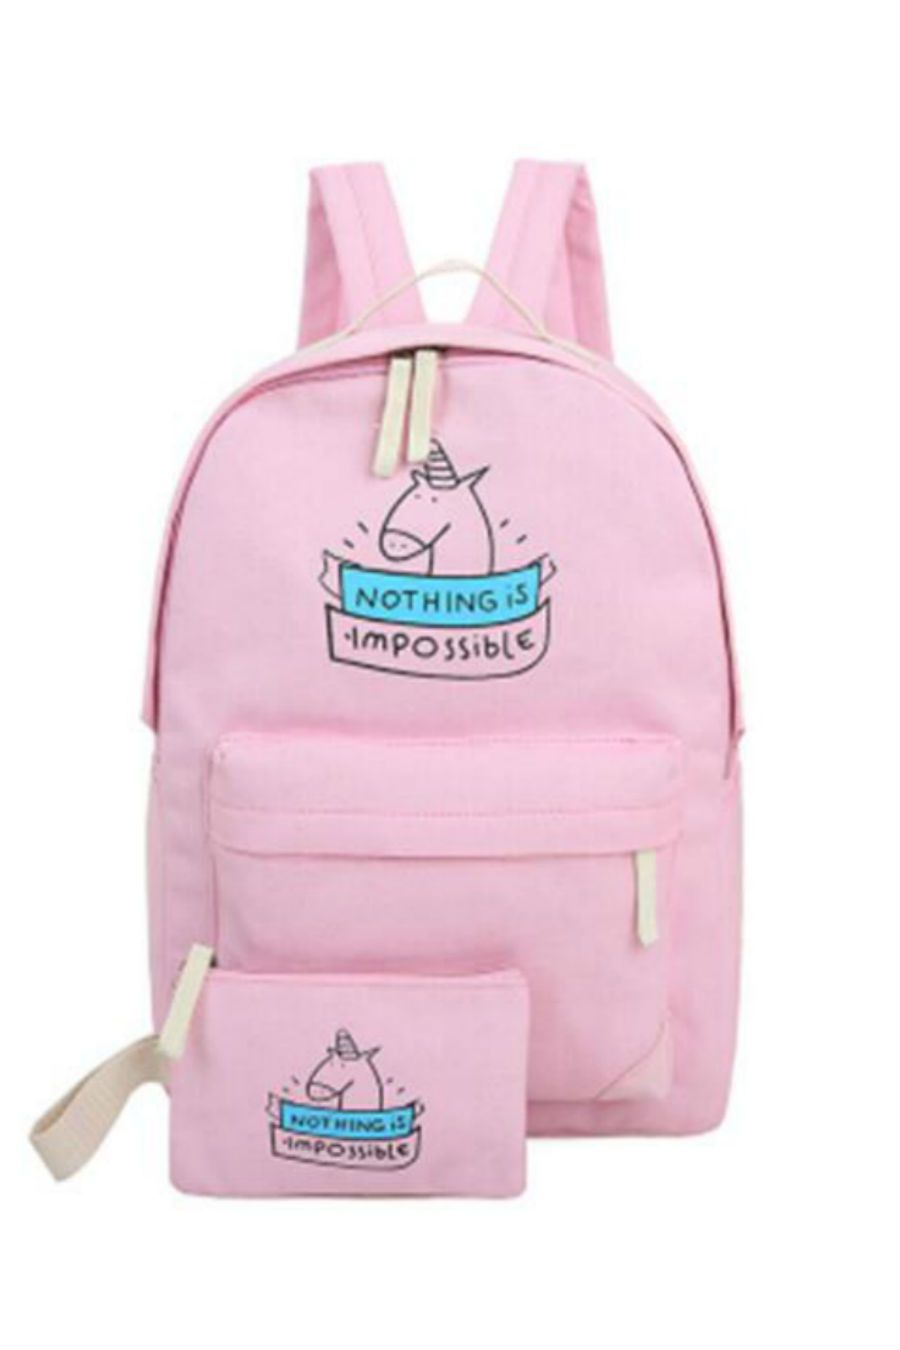 Japanese Cute Ear Canvas Girl Street Shooting Student Bag Casual Large Capacity Travel Backpack Laptop Backpack Teen Backpack Backpacks